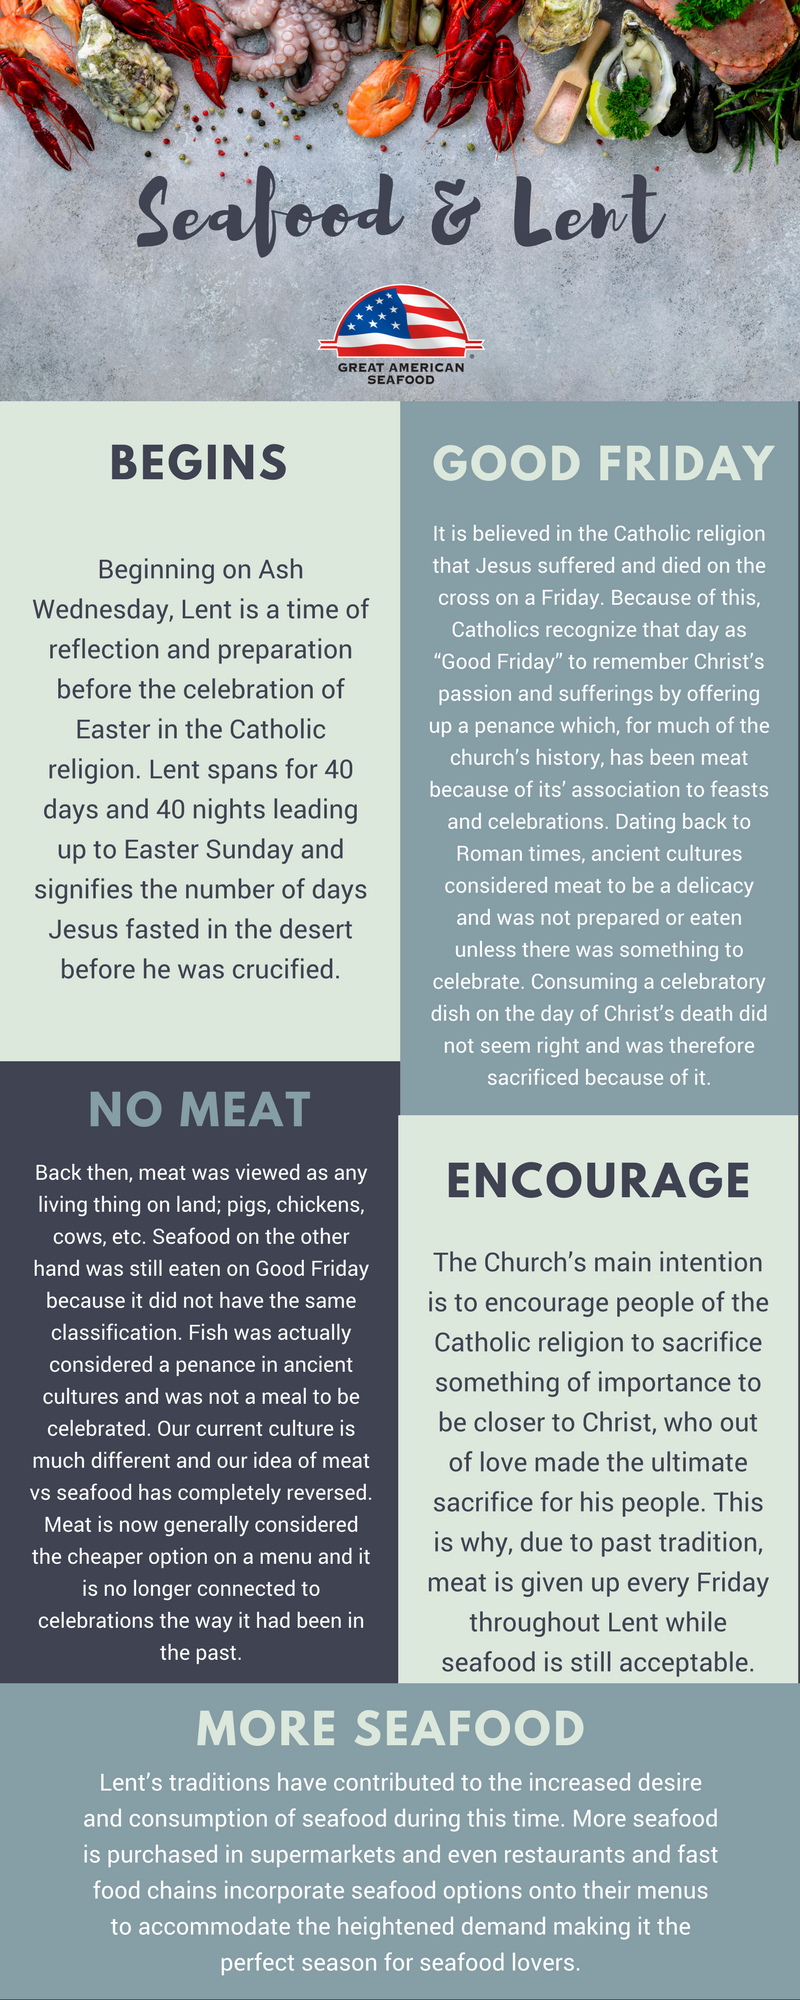 lent seafood traditions